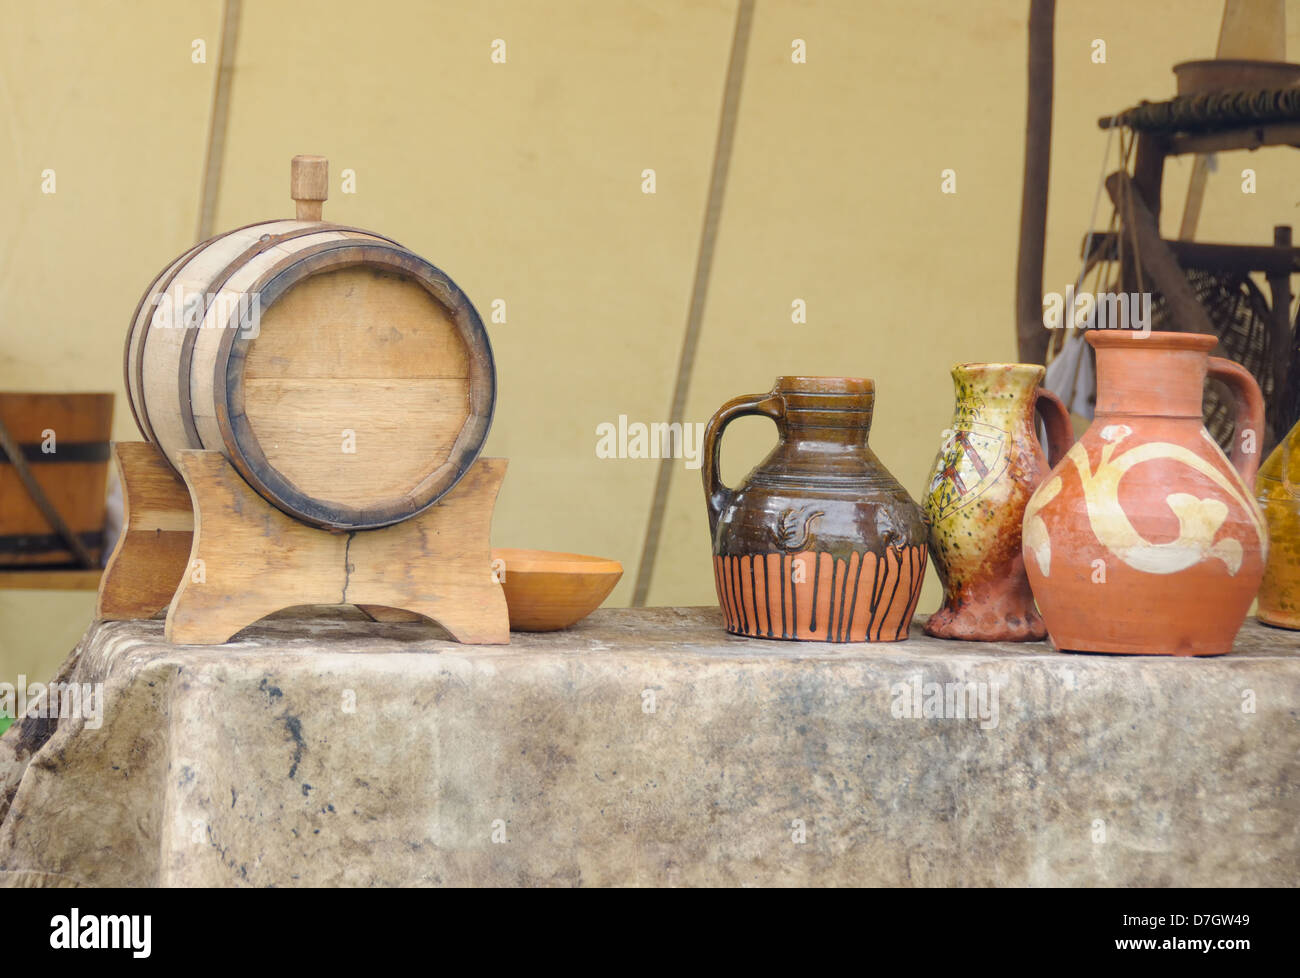 Old clay vessels and wooden cask used for storing wine and ale , on display at a country fete - Stock Image